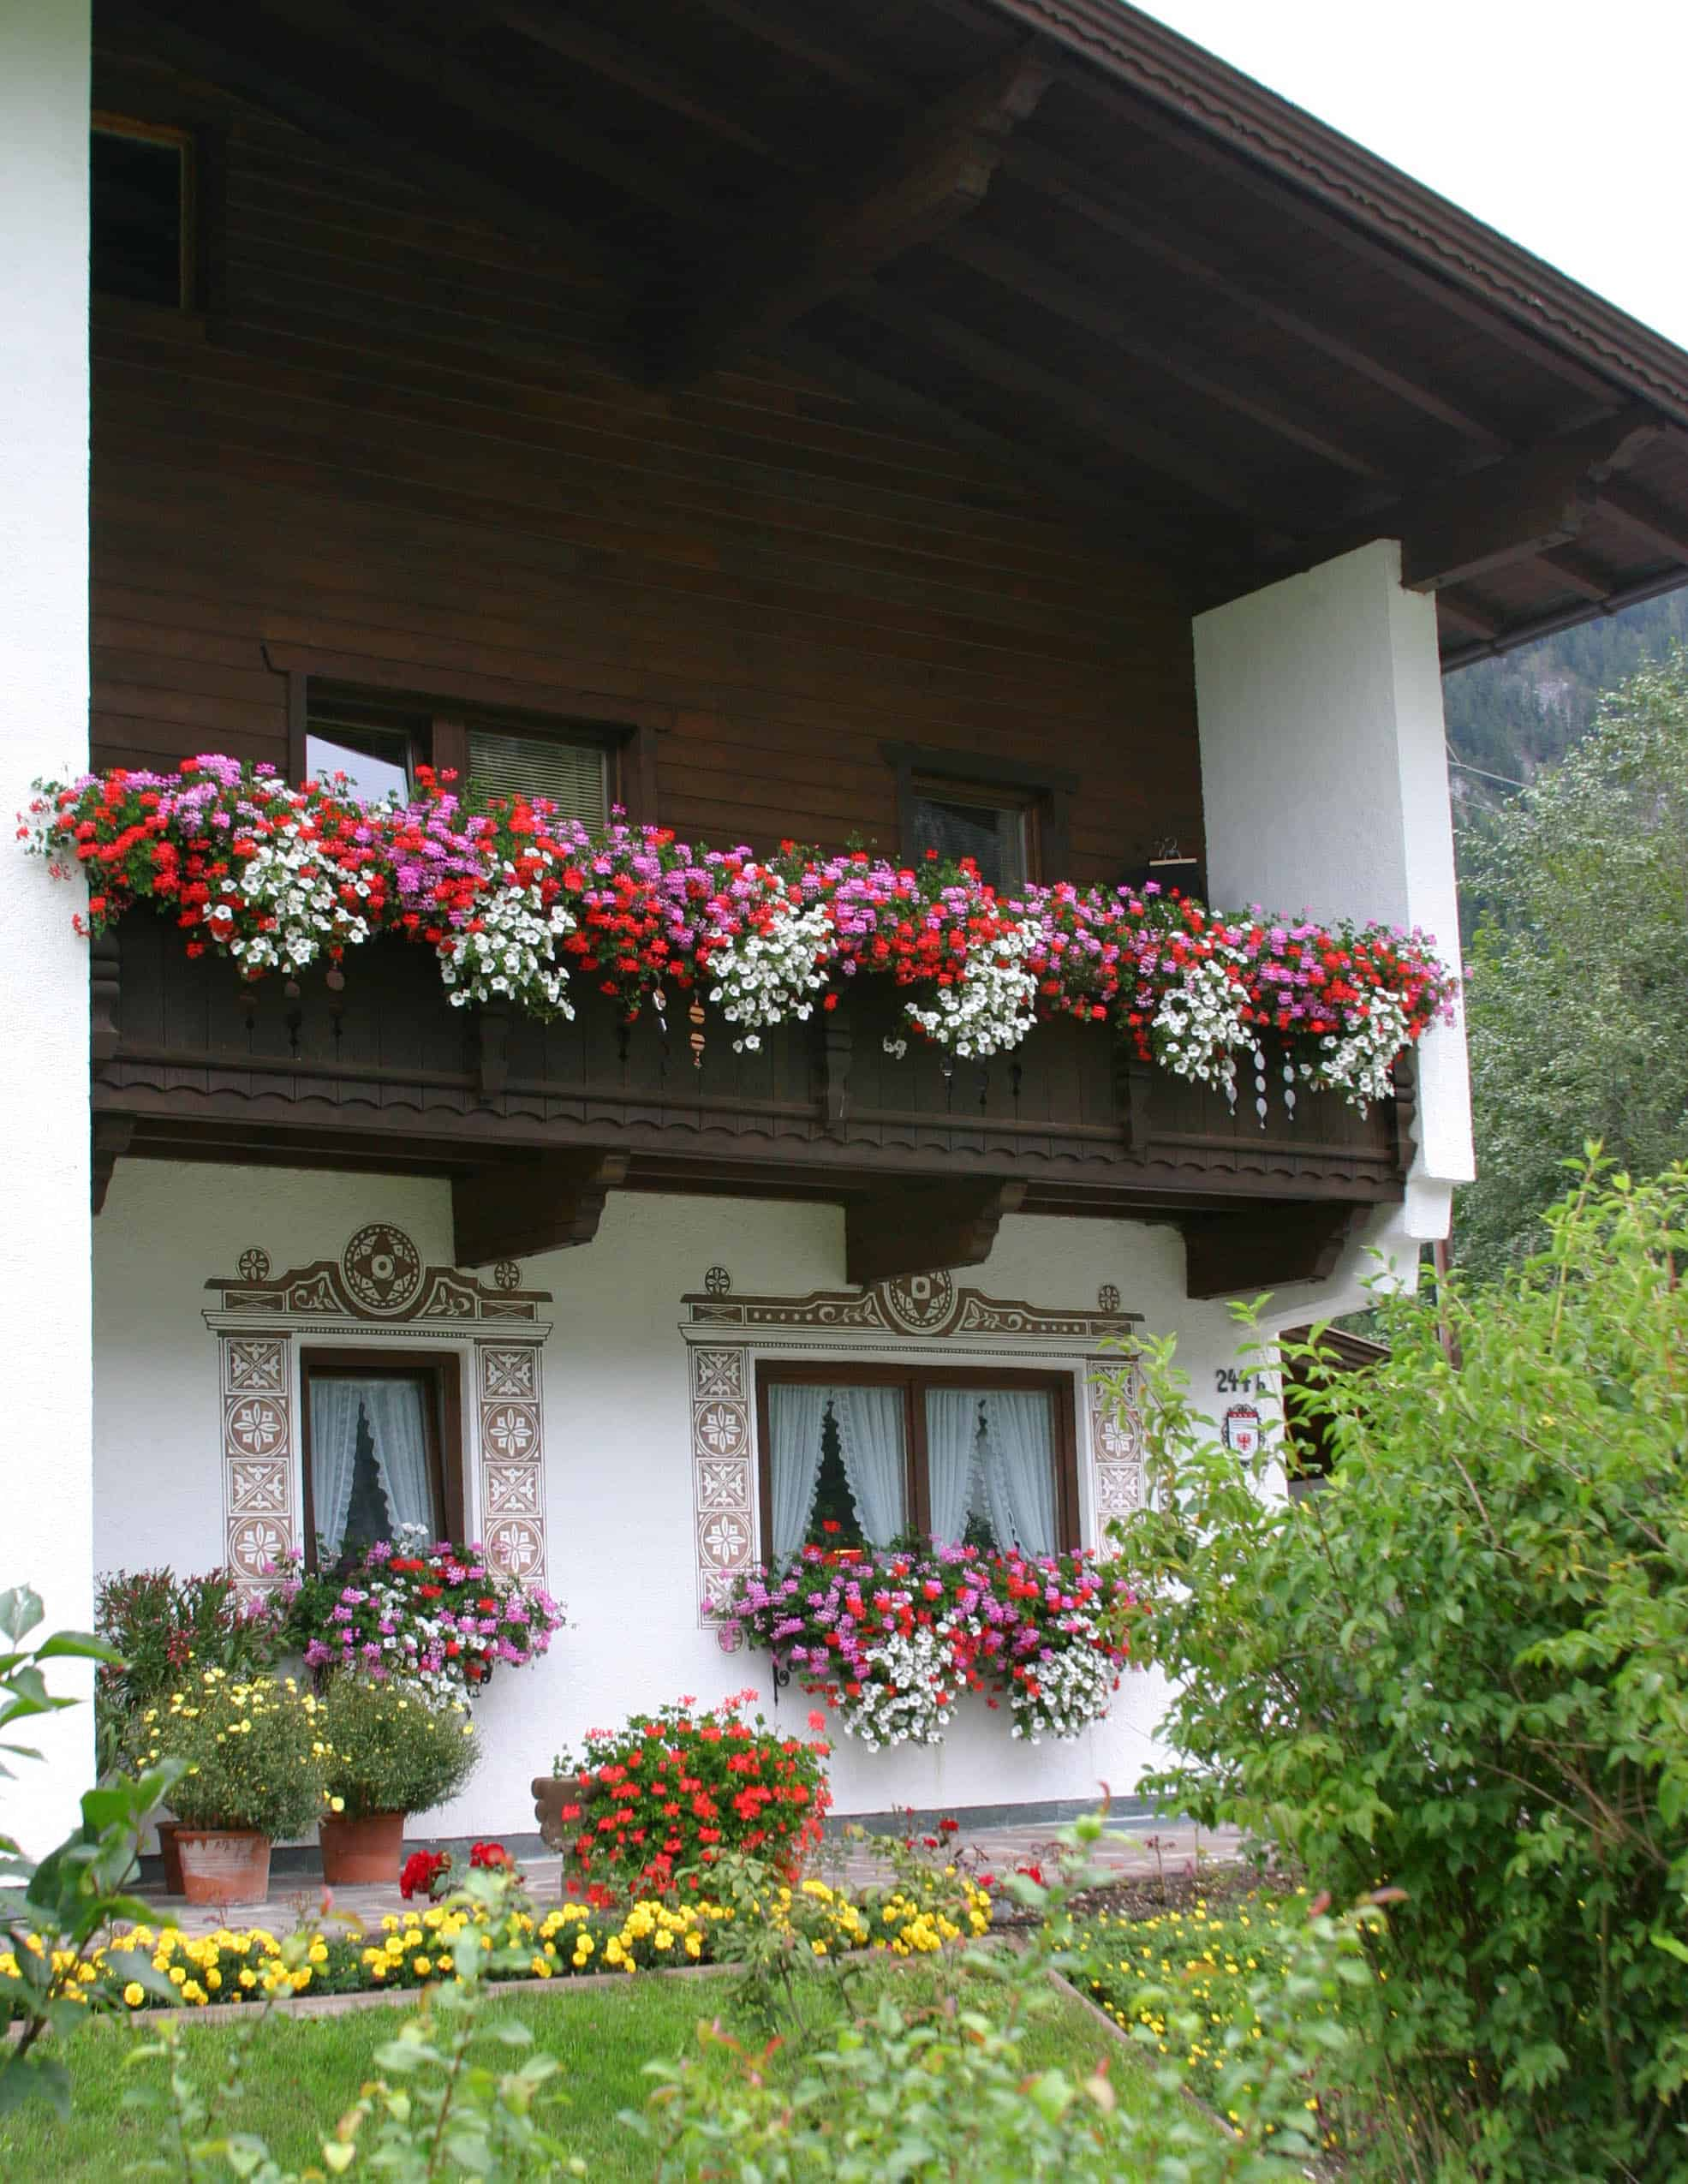 Curb appeal: Add flower boxes to windows and balconies